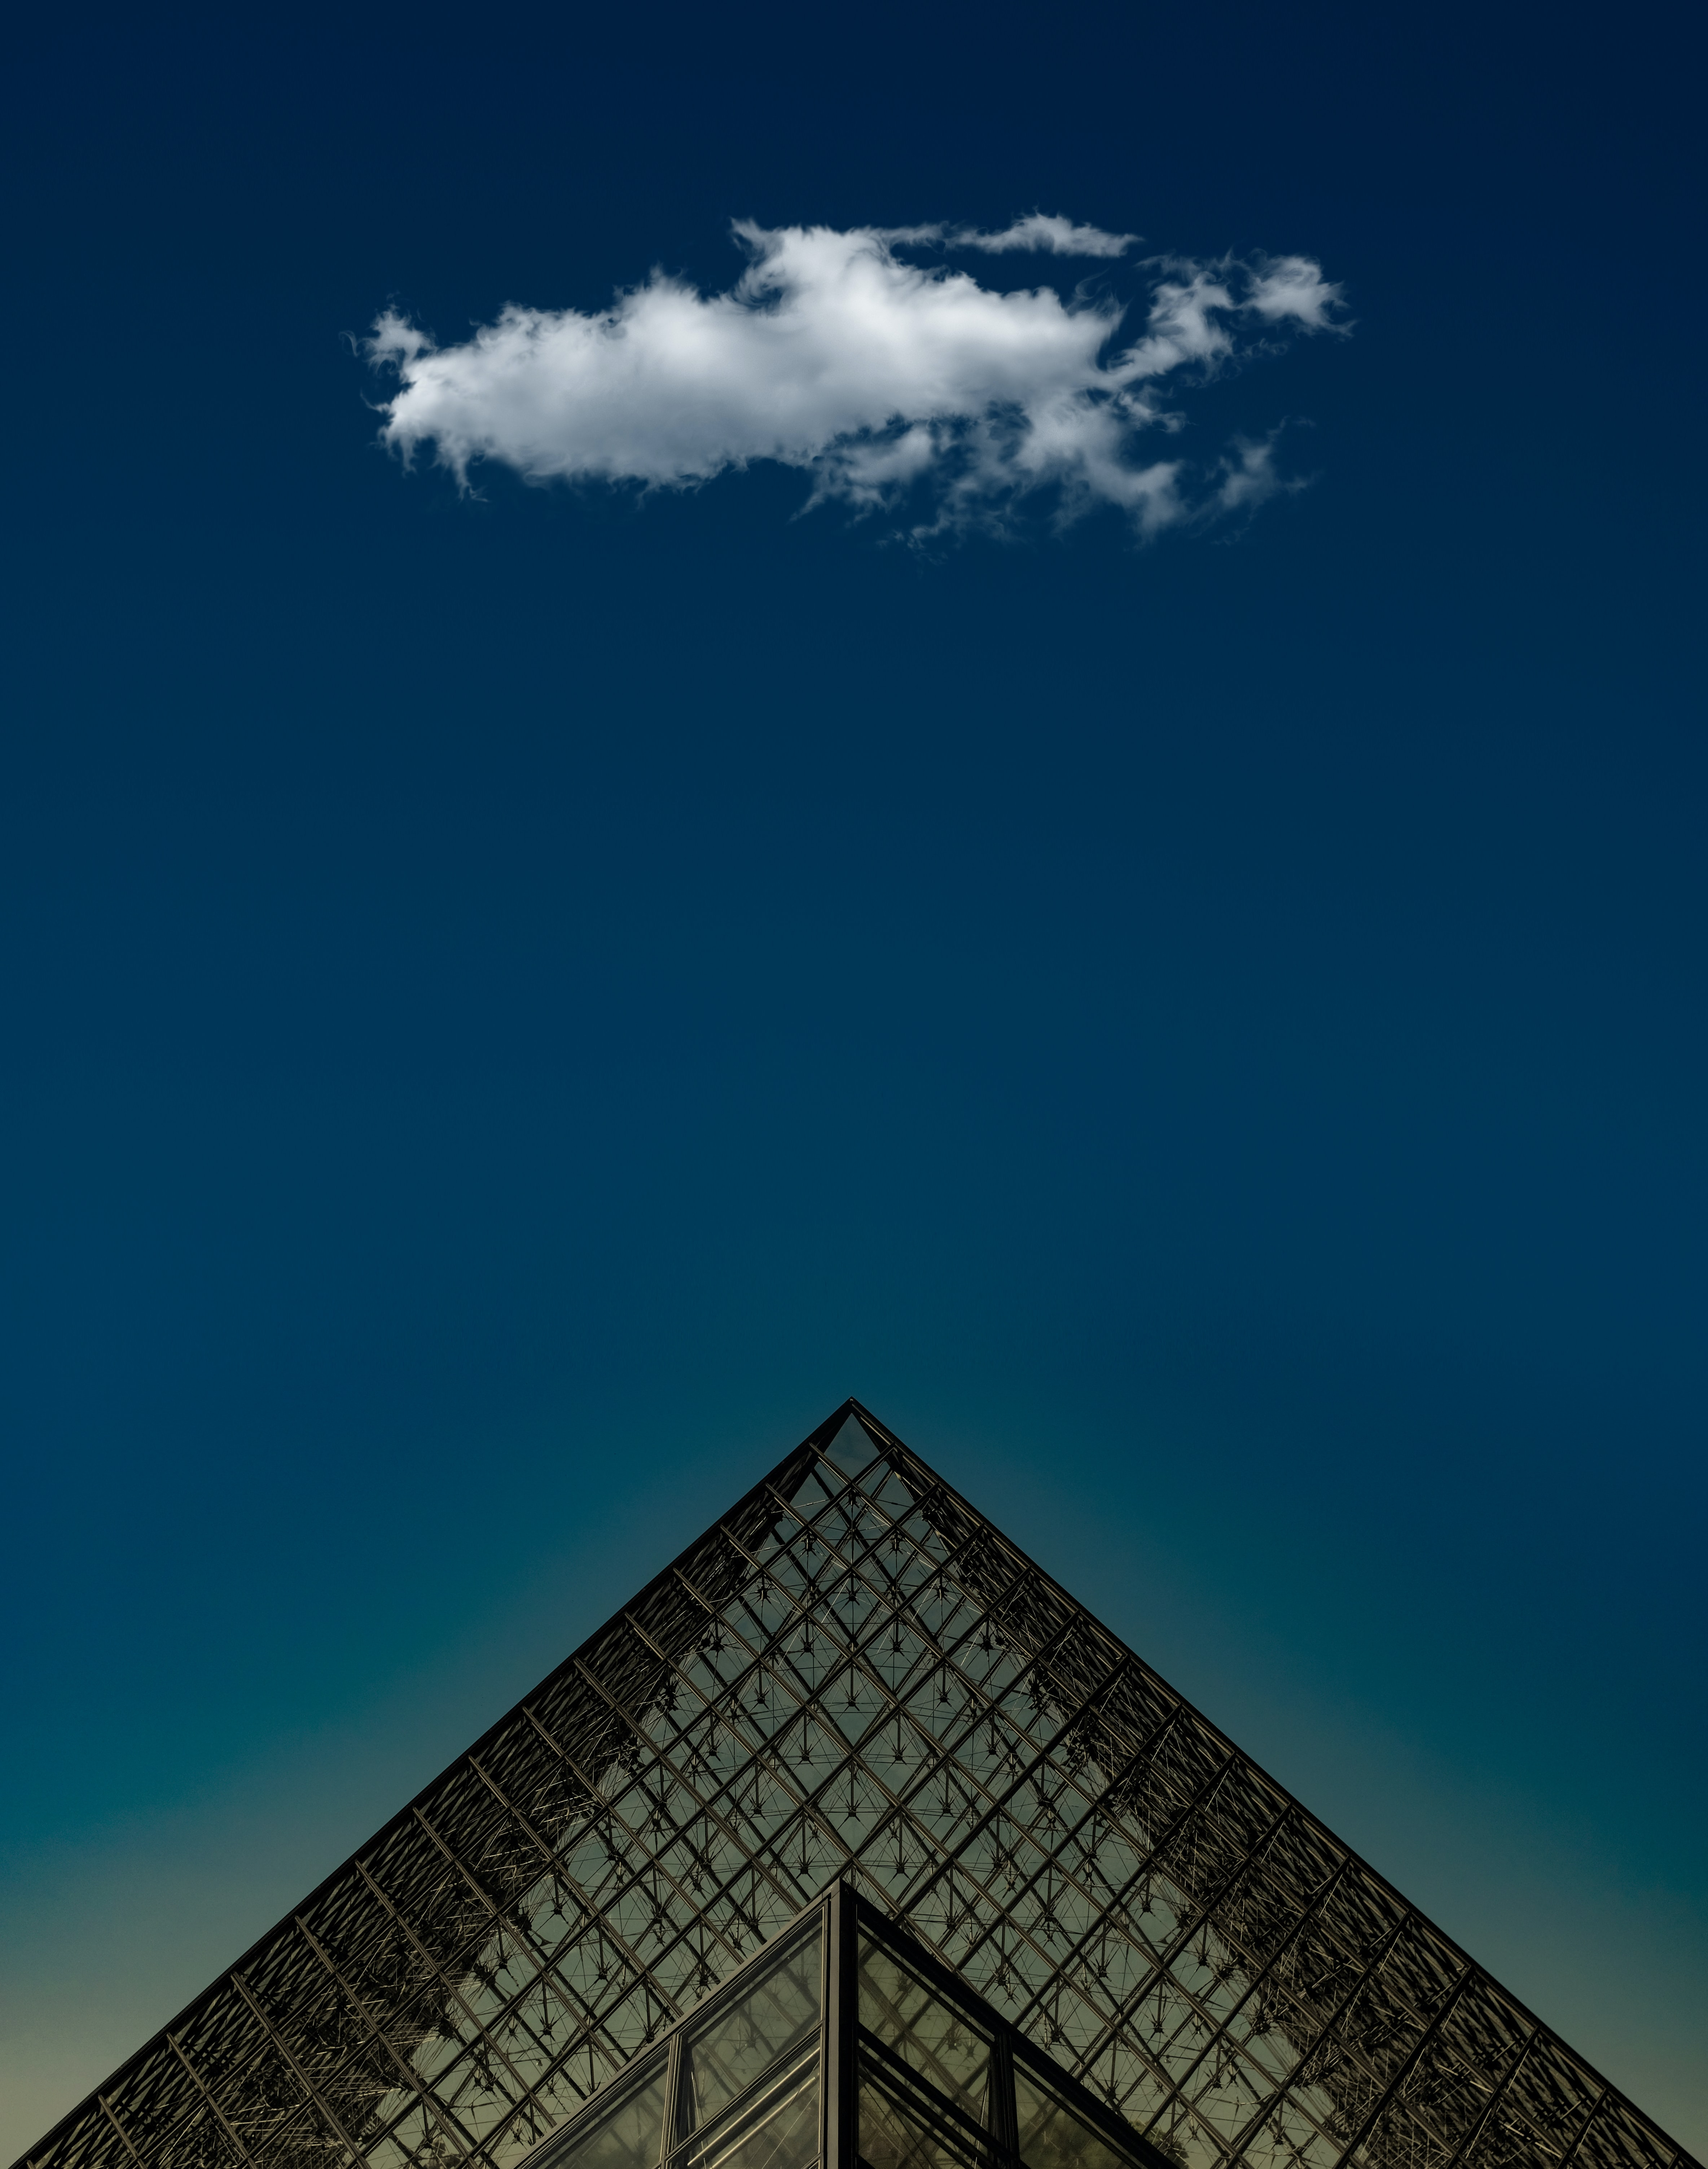 A small cloud in the deep blue sky above the triangular pyramid in front of the Louvre